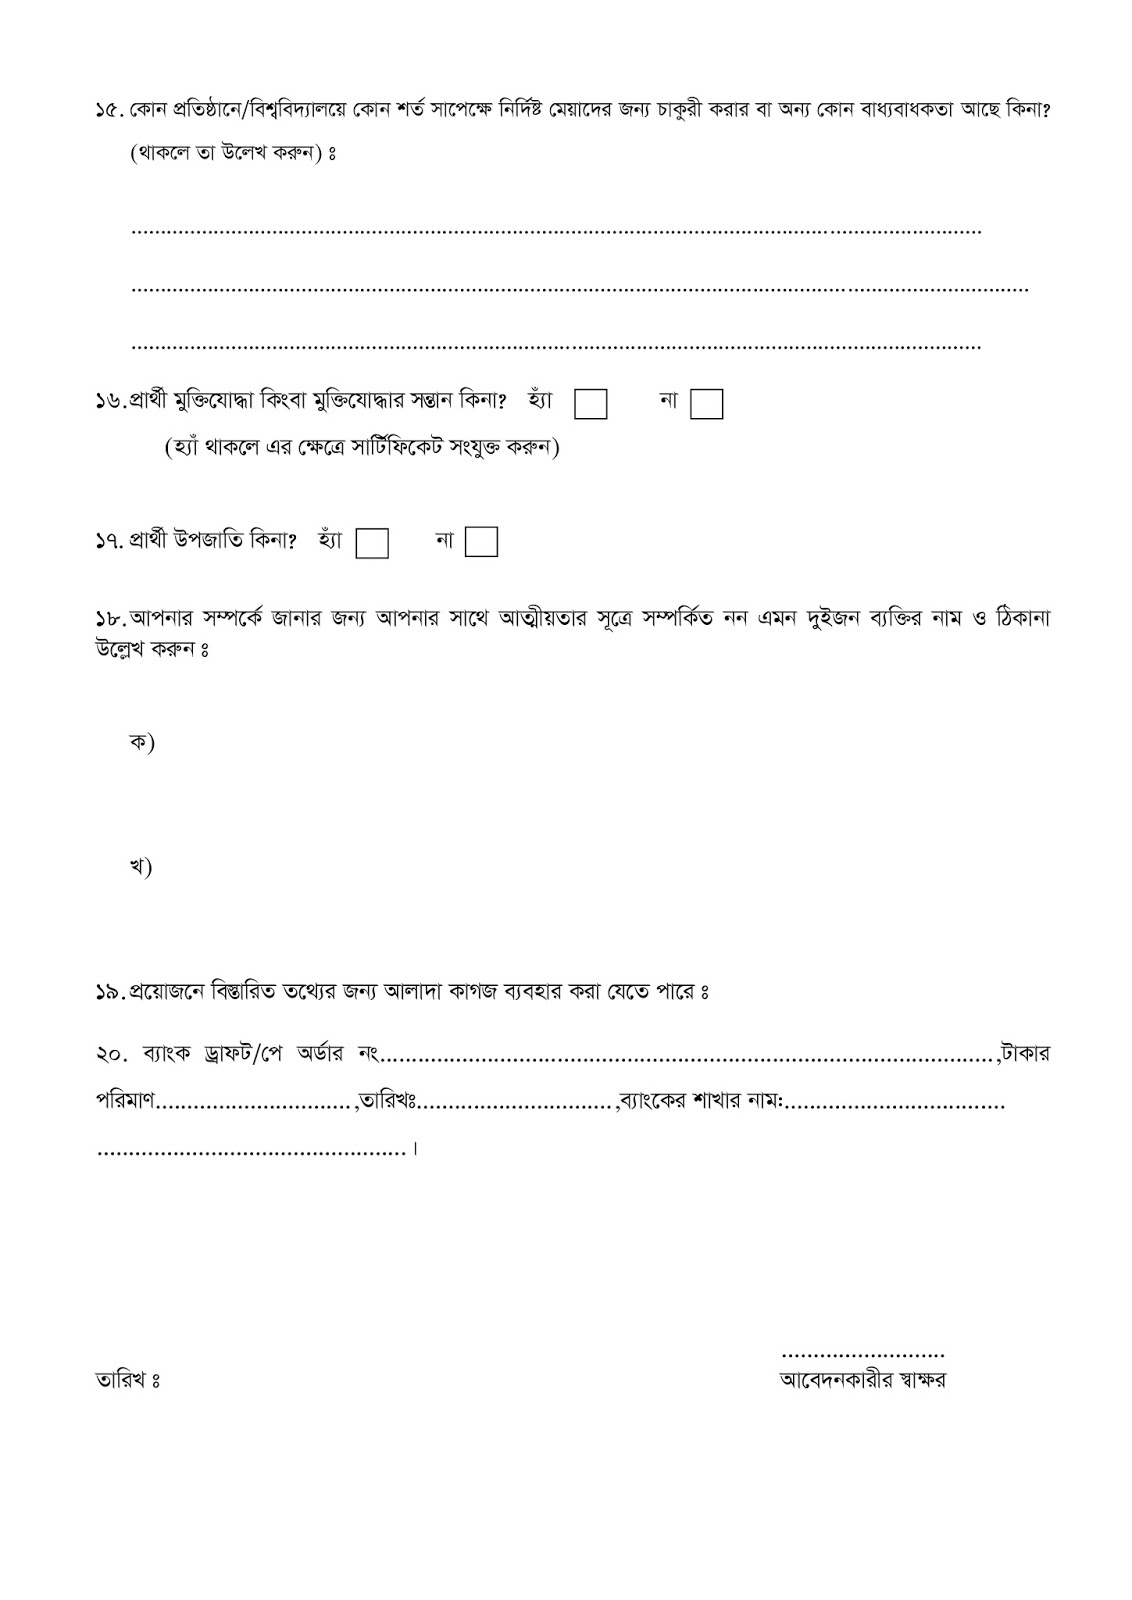 Patuakhali Science and Technology University (PSTU) Job Application Form